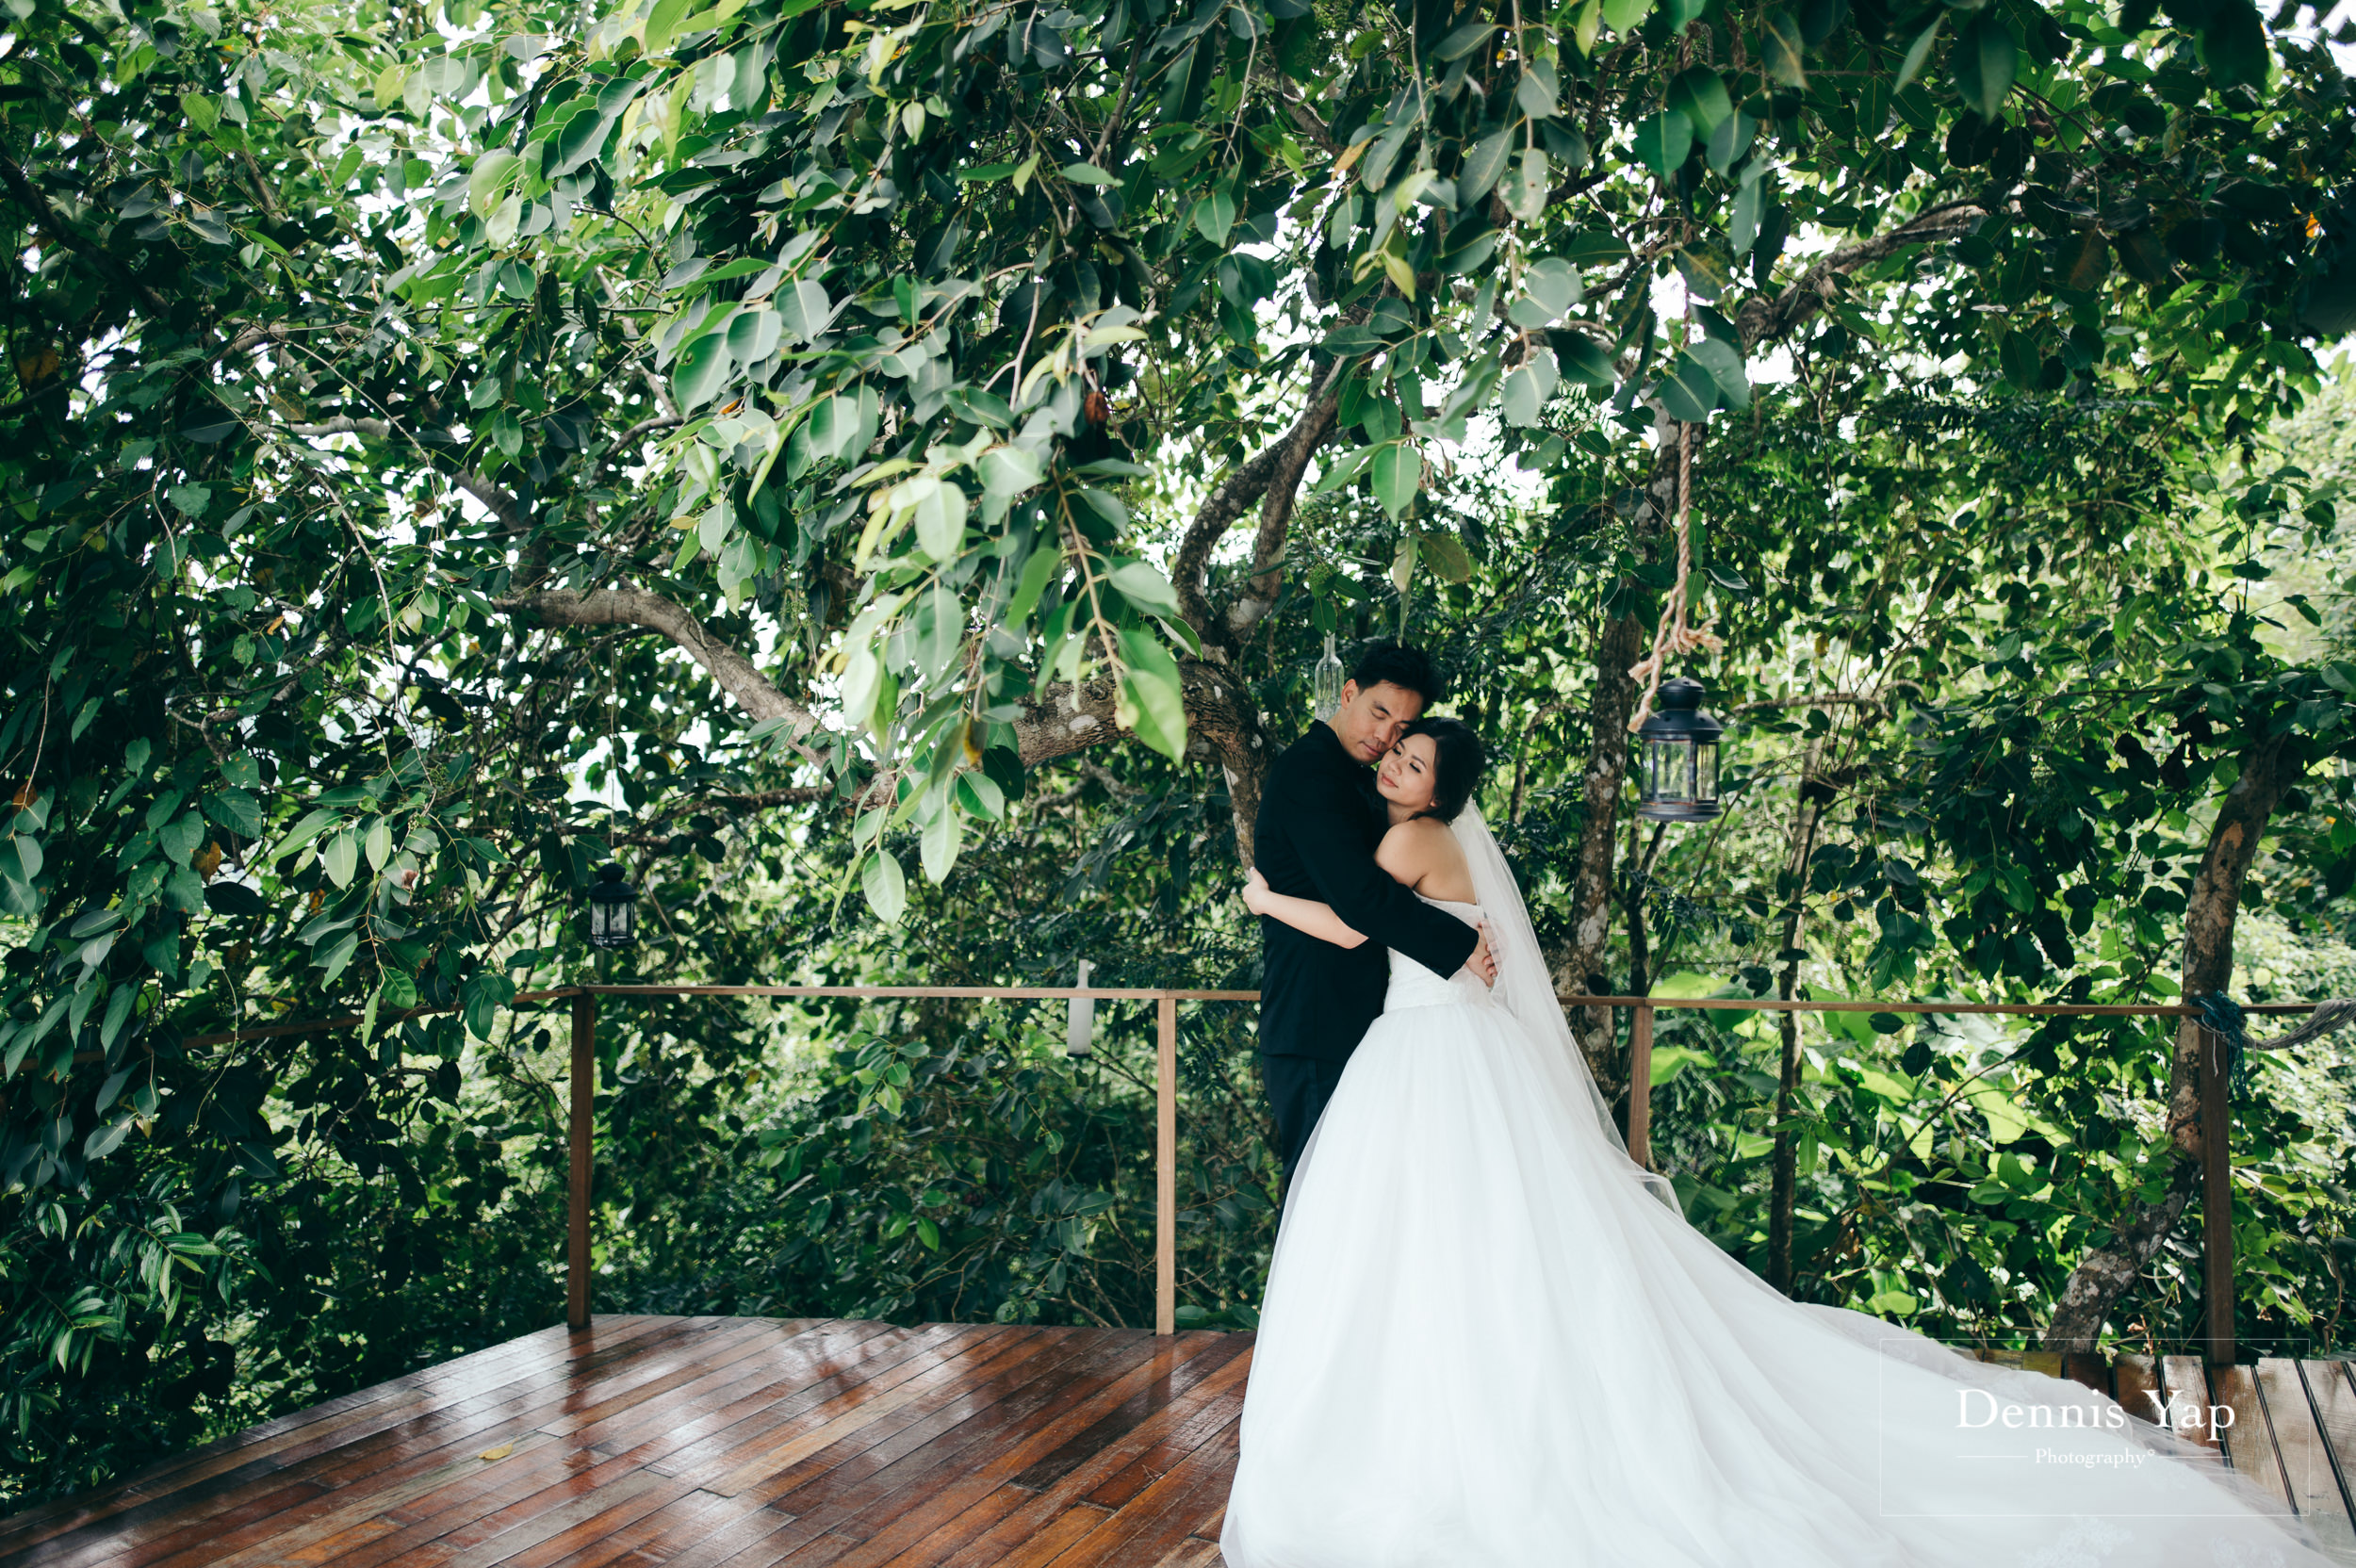 desmond yvonne pre wedding shorea retreat seremban dennis yap photography forest retreat-114.jpg